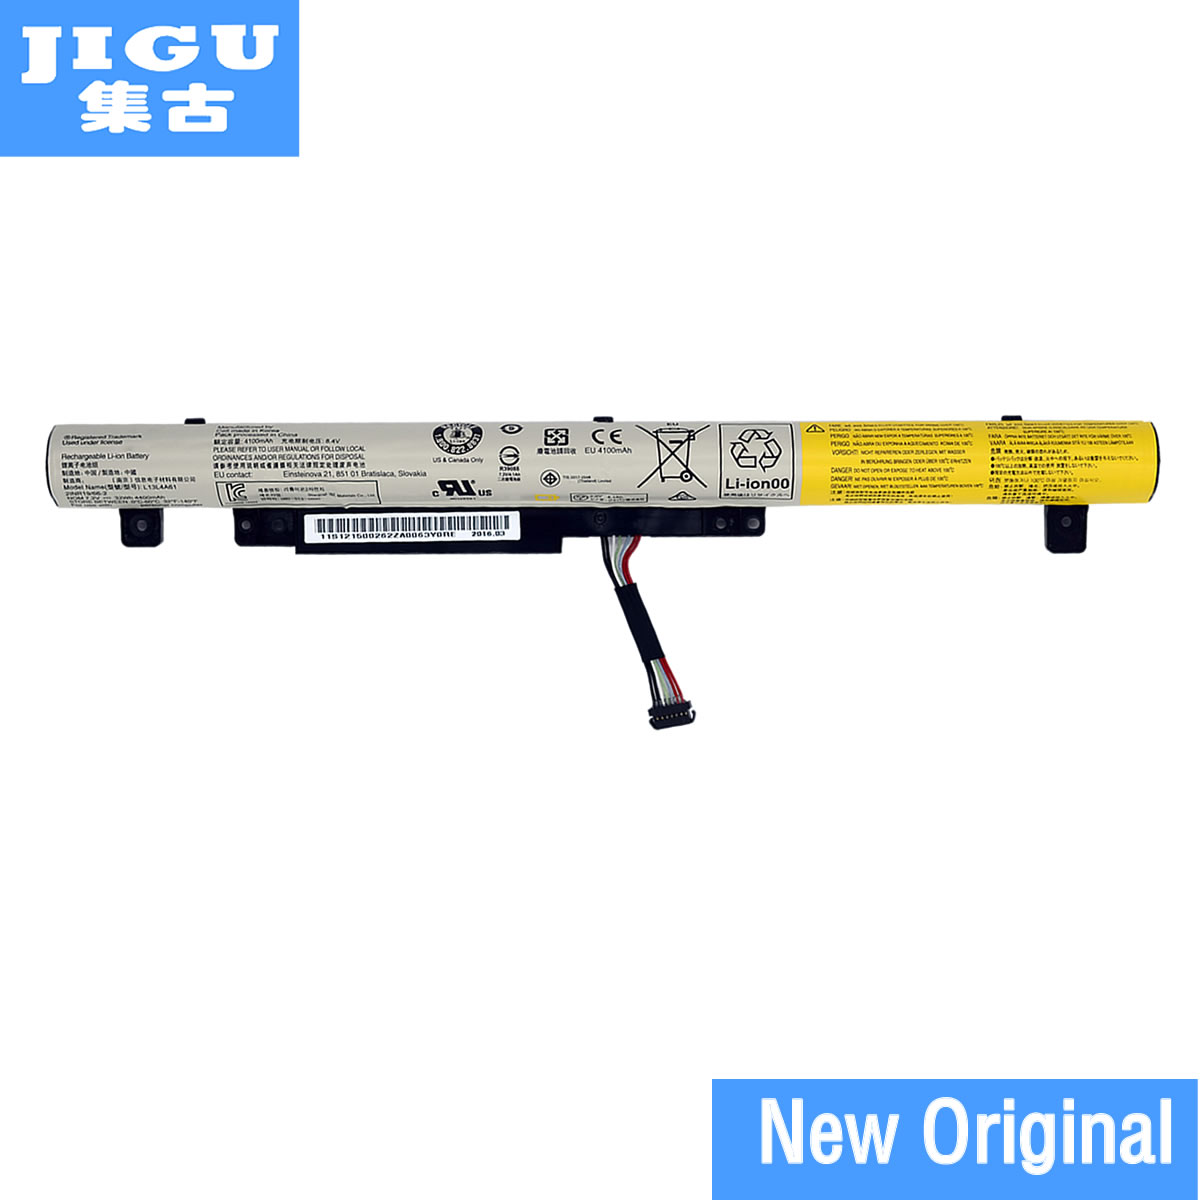 JIGU L13L4A61 L13L4E61 L13M4A61 L13M4E61 L13S4A61 Original laptop Battery For Lenovo Flex 2 14 15 2-14d 2-15d 2-14 2-15 щетки стеклоочистителя bosch aero 3 397 008 539 650mm